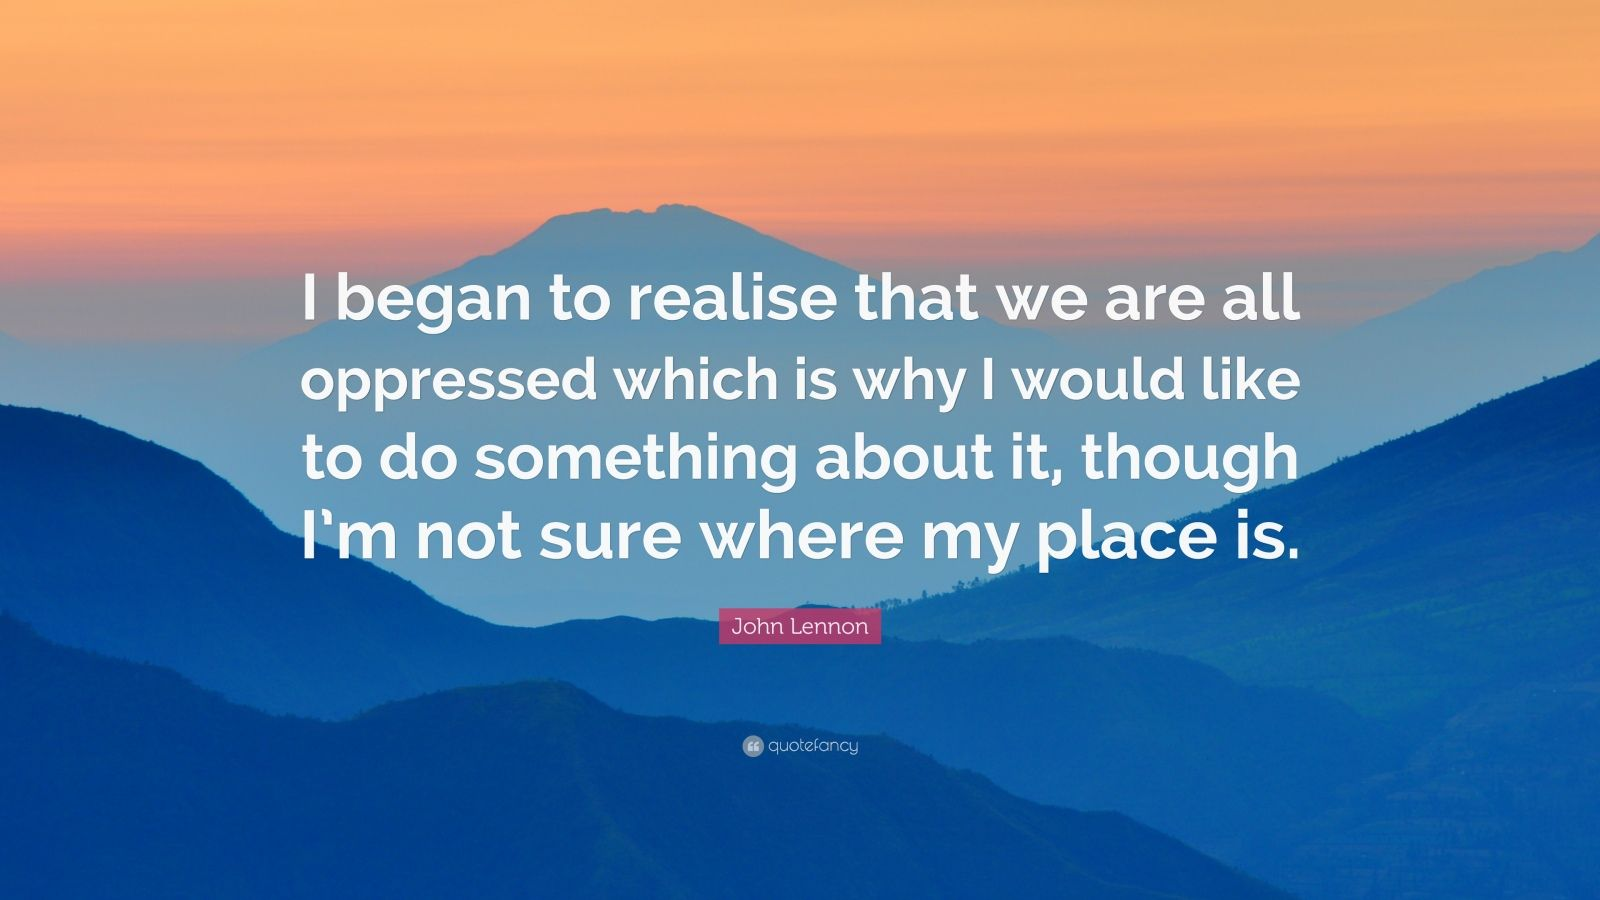 """John Lennon Quote: """"I began to realise that we are all oppressed which is why I would like to do something about it, though I'm not sure where my place is."""""""